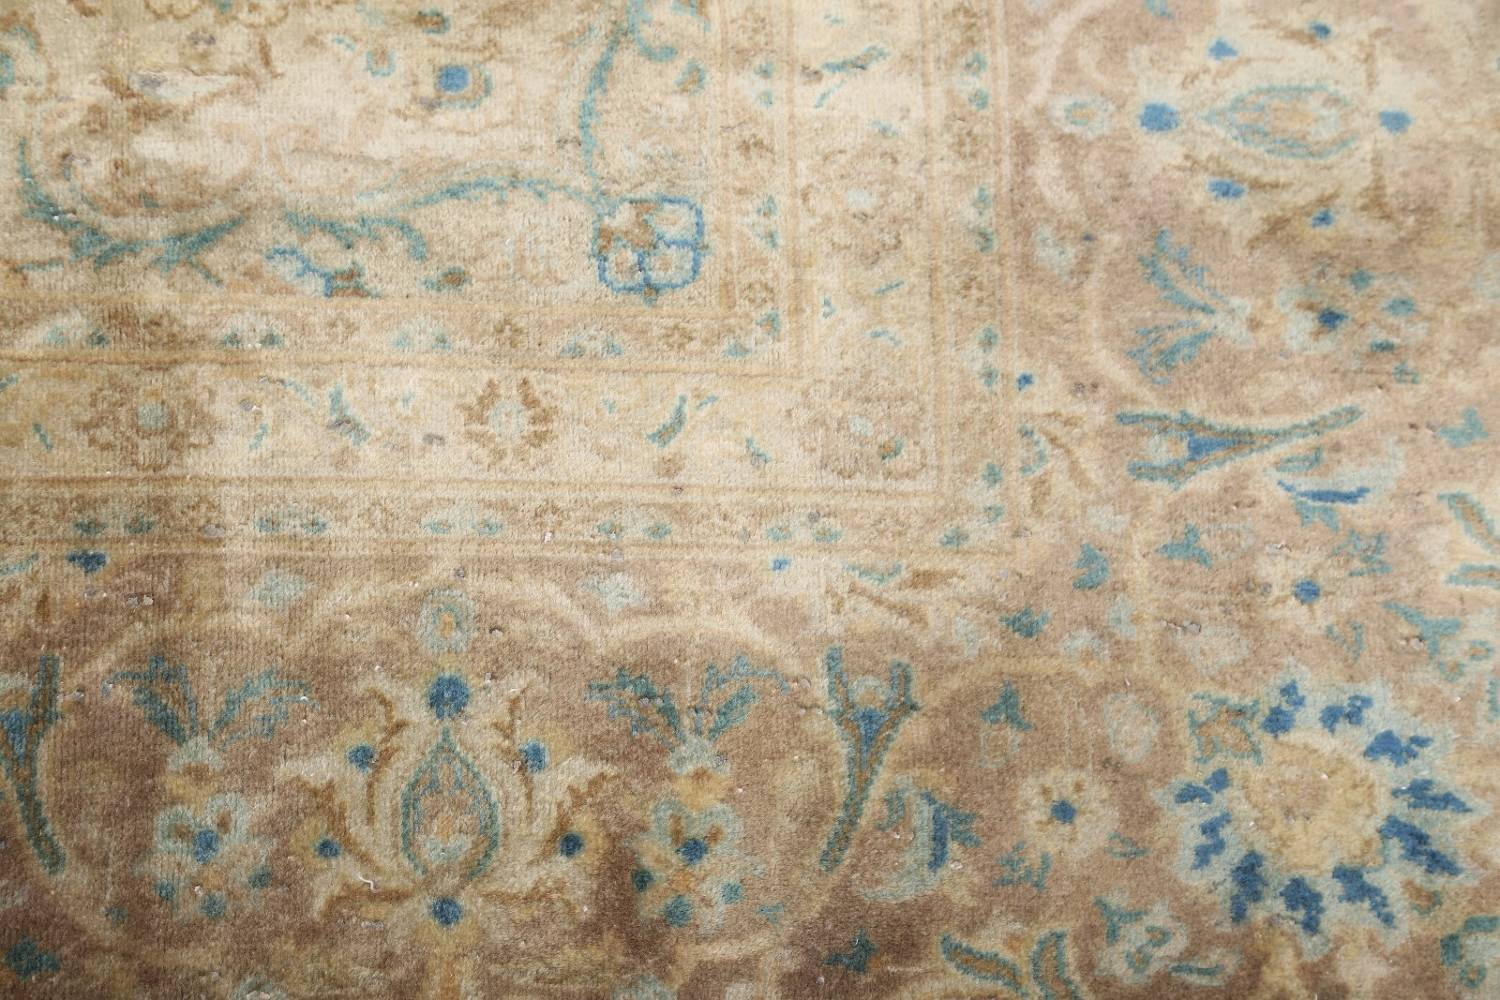 Antique Muted Distressed Kashan Persian Area Rug 9x13 image 14